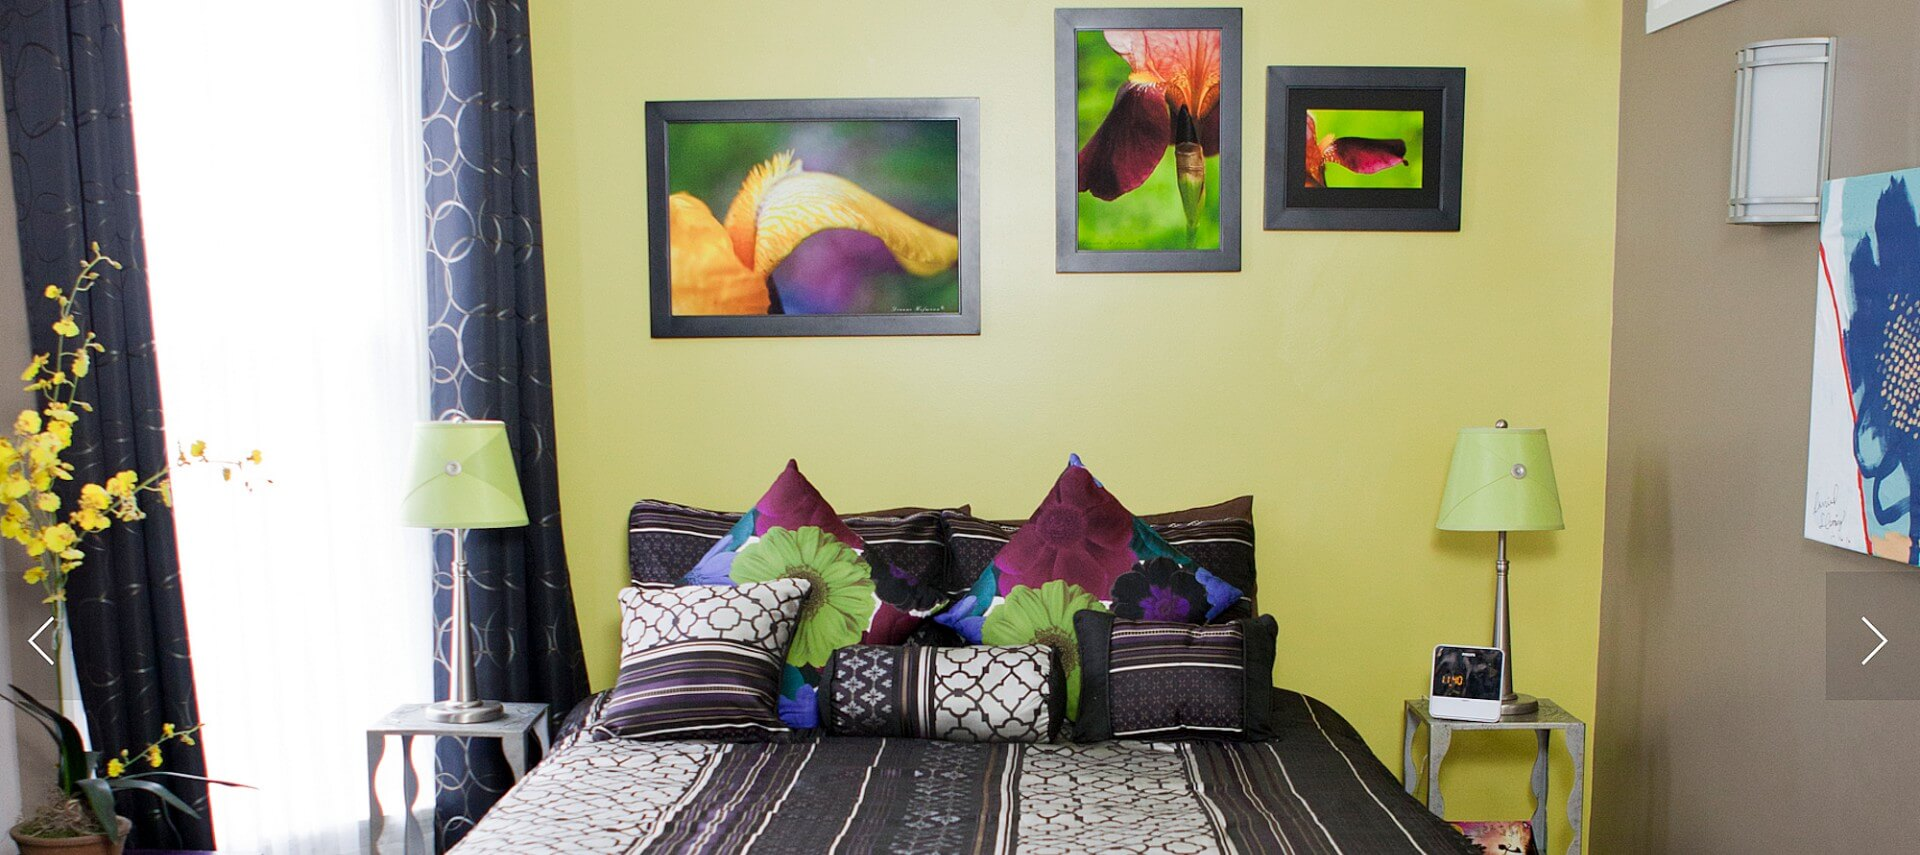 Bedroom with lime and beige walls and a queen bed made up in a black and purple spread and shams.